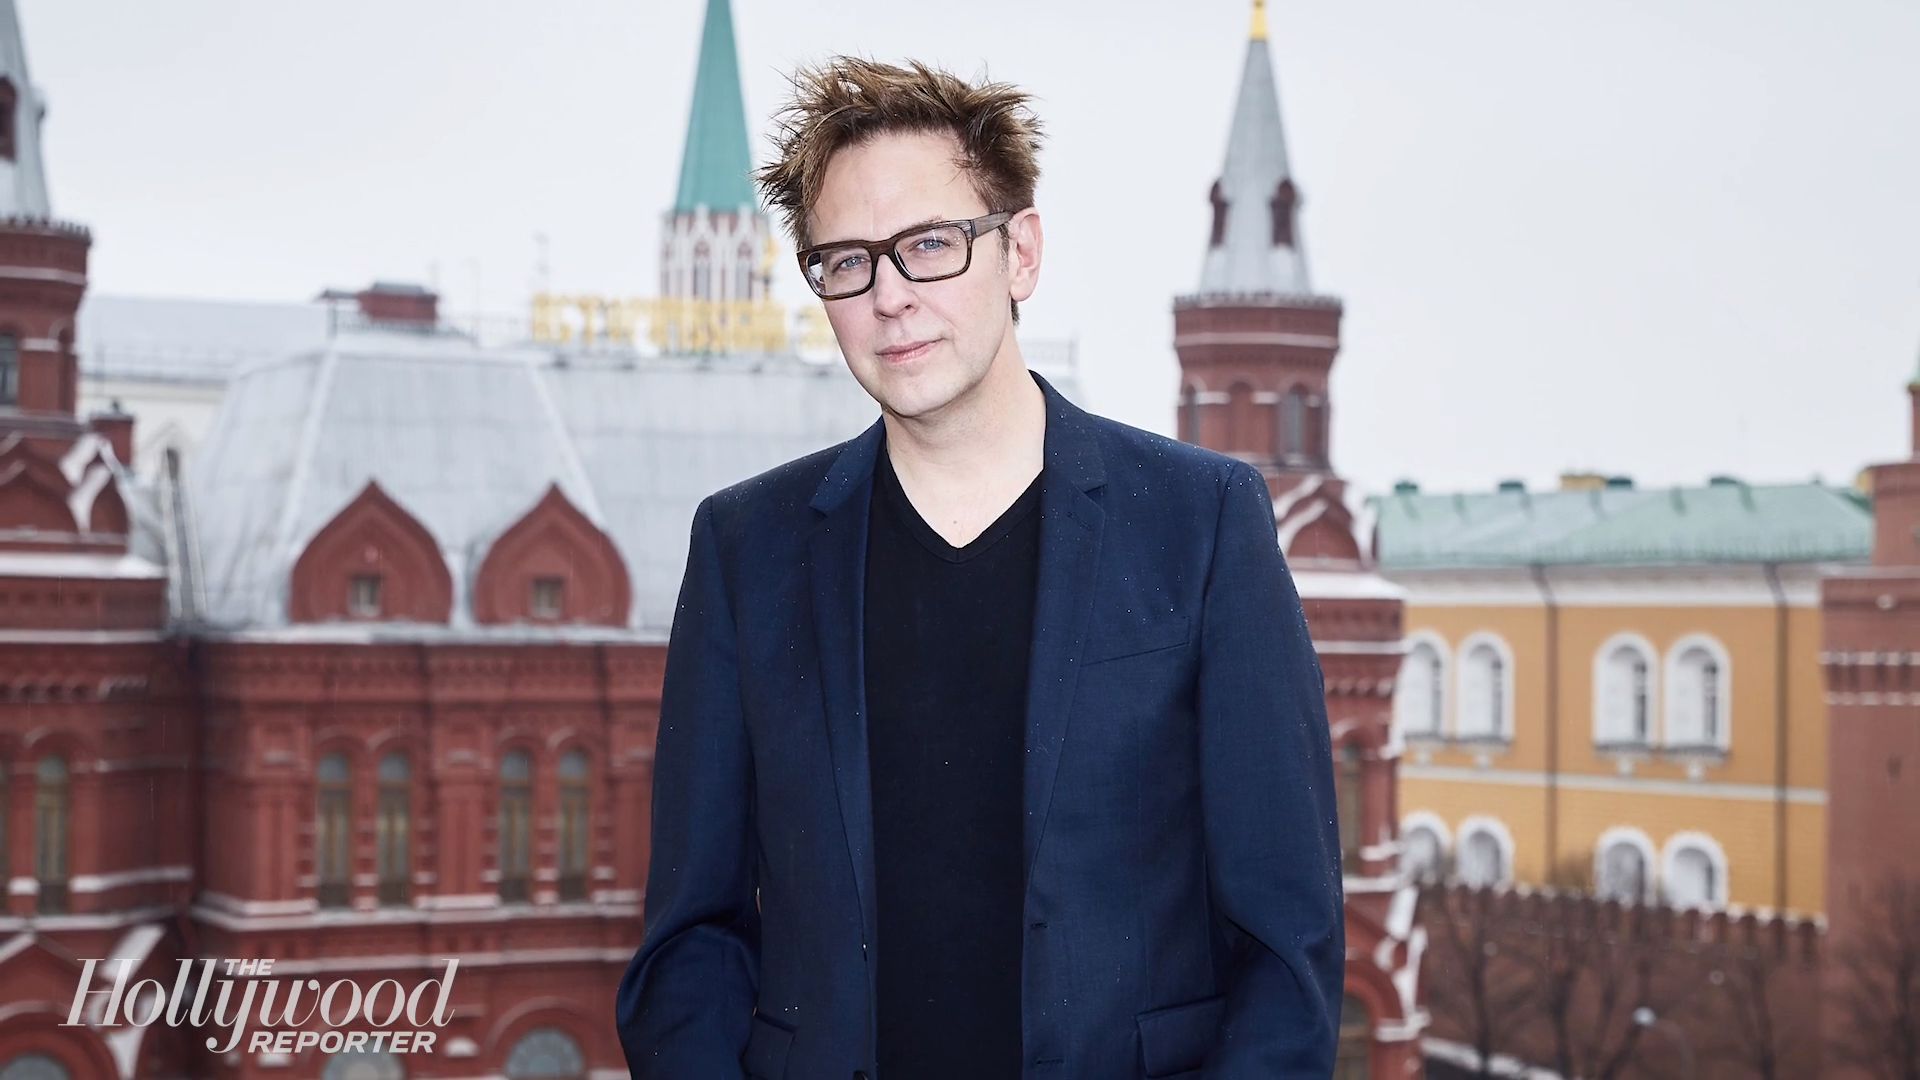 James Gunn in Demand for Major Studio Movies After Disney Firing James Gunn in Demand for Major Studio Movies After Disney Firing